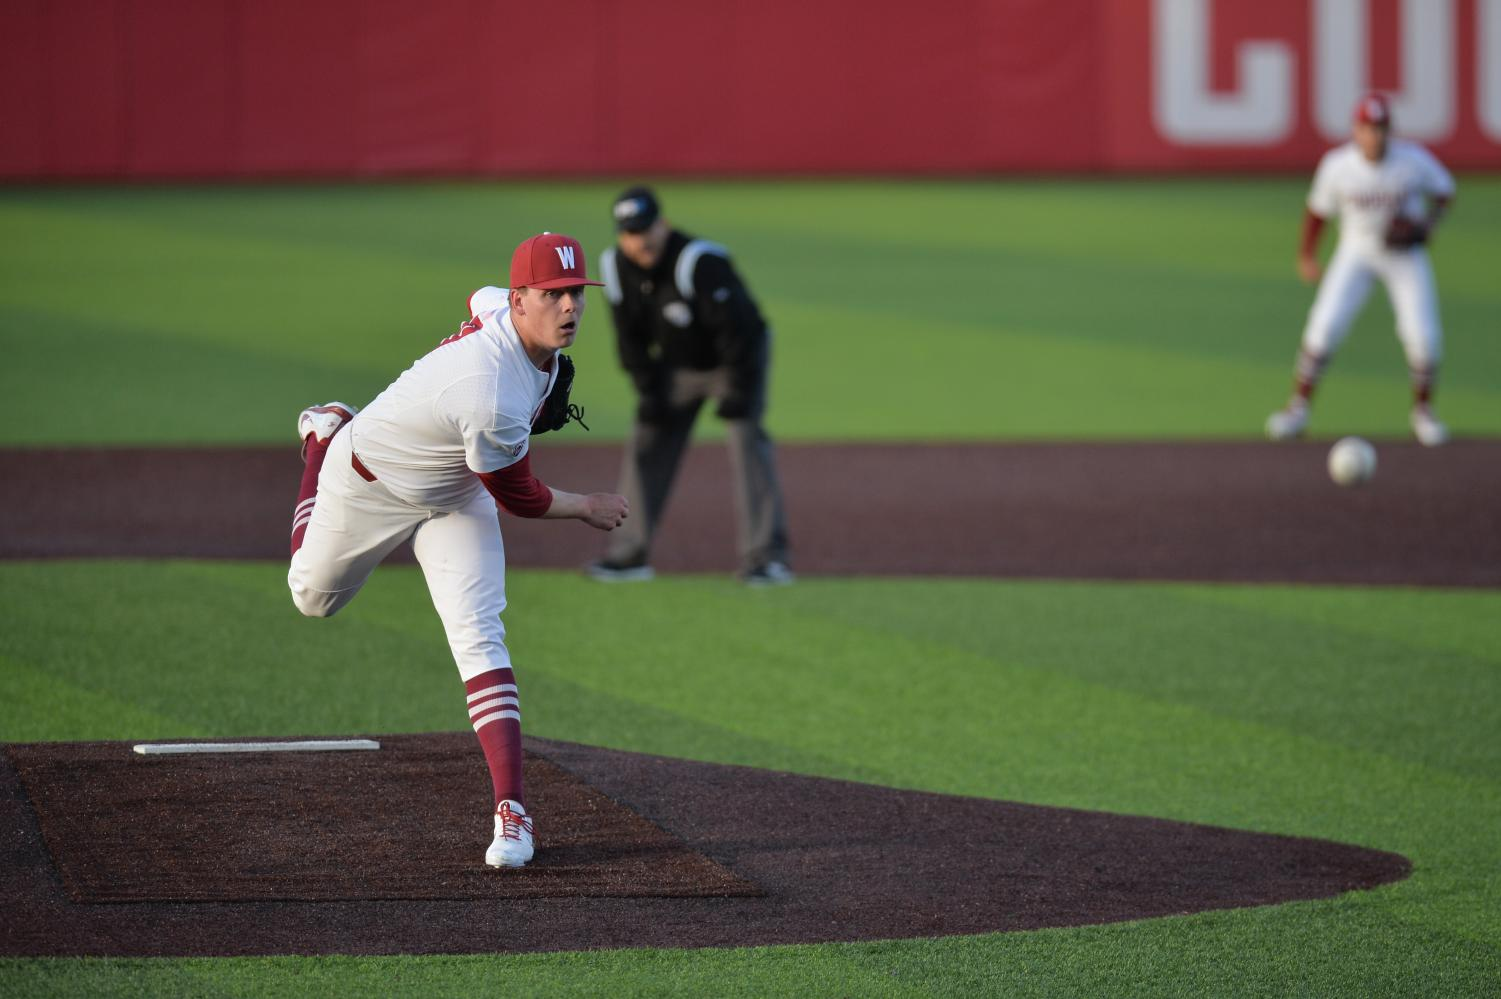 Freshman right-handed pitcher Zane Mills pitches in the fifth inning of the game against Stanford on March 29 at Bailey-Brayton Field.